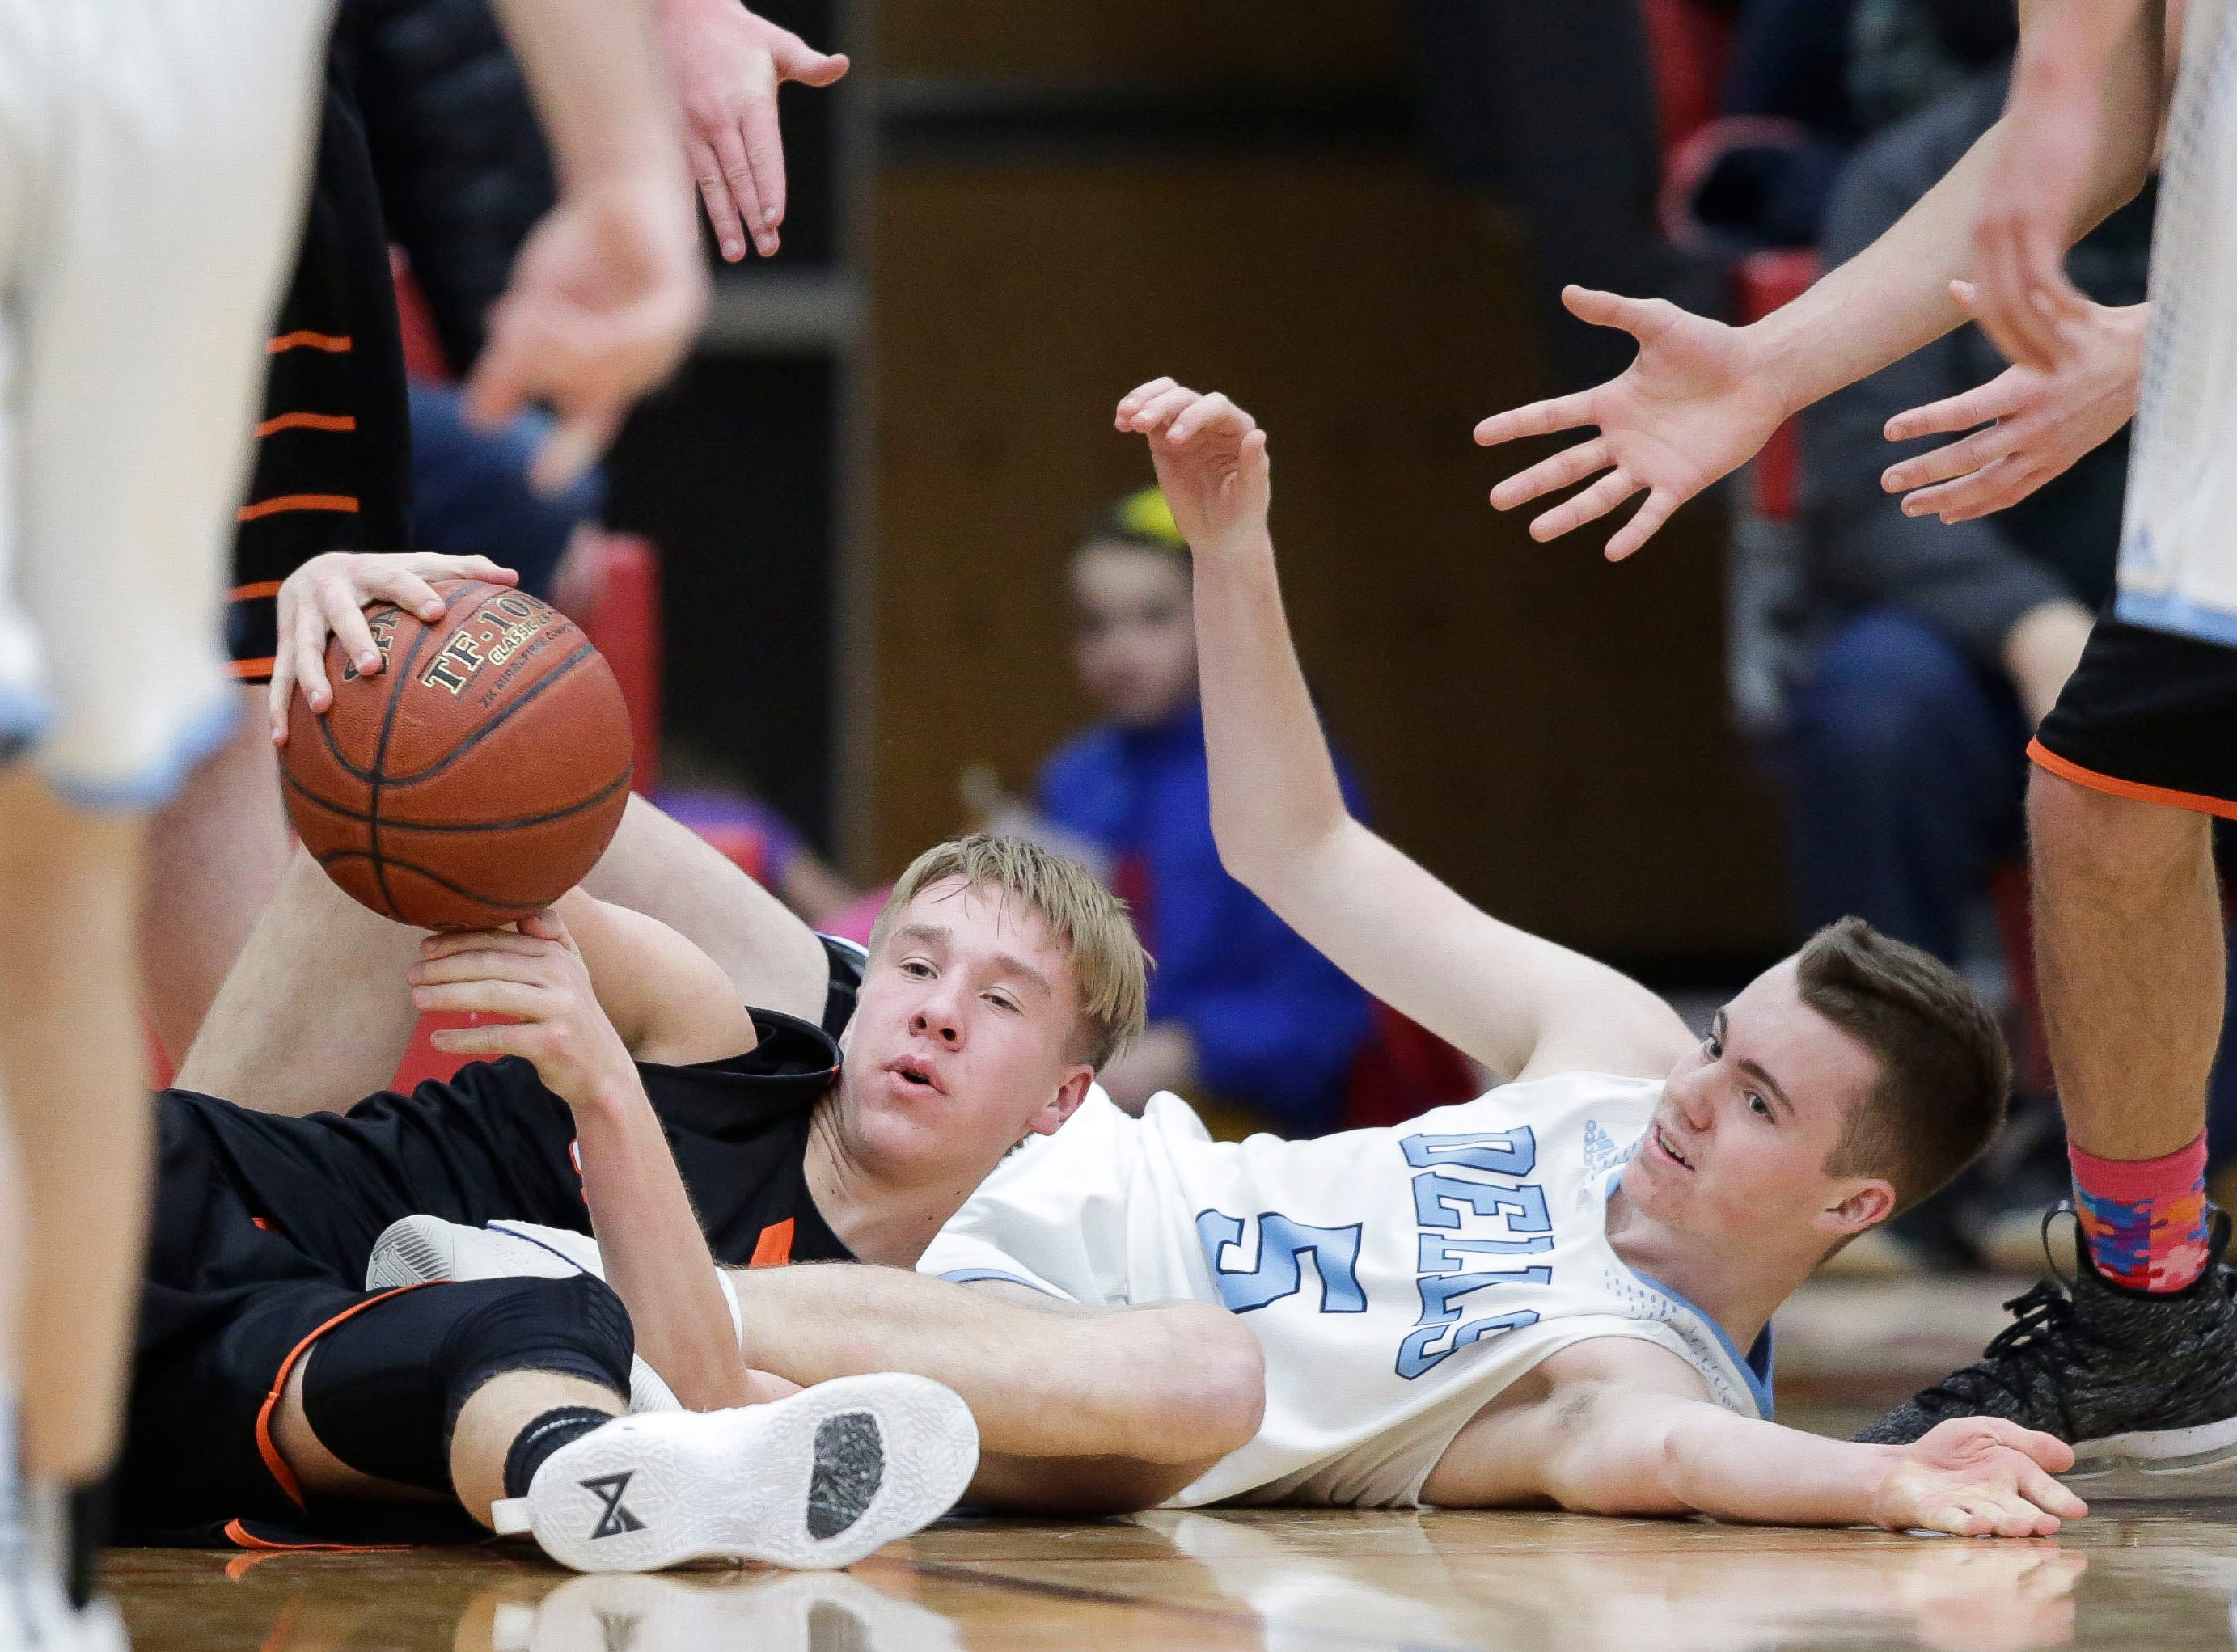 Stratford's Chandler Schmidt (11) and Wisconsin Dells' Sam Millard (5) fight for a loose ball in a Division 3 sectional semifinal on Thursday, March 7, 2019, at Stevens Point Area High School in Stevens Point, Wis. Tork Mason/USA TODAY NETWORK-Wisconsin